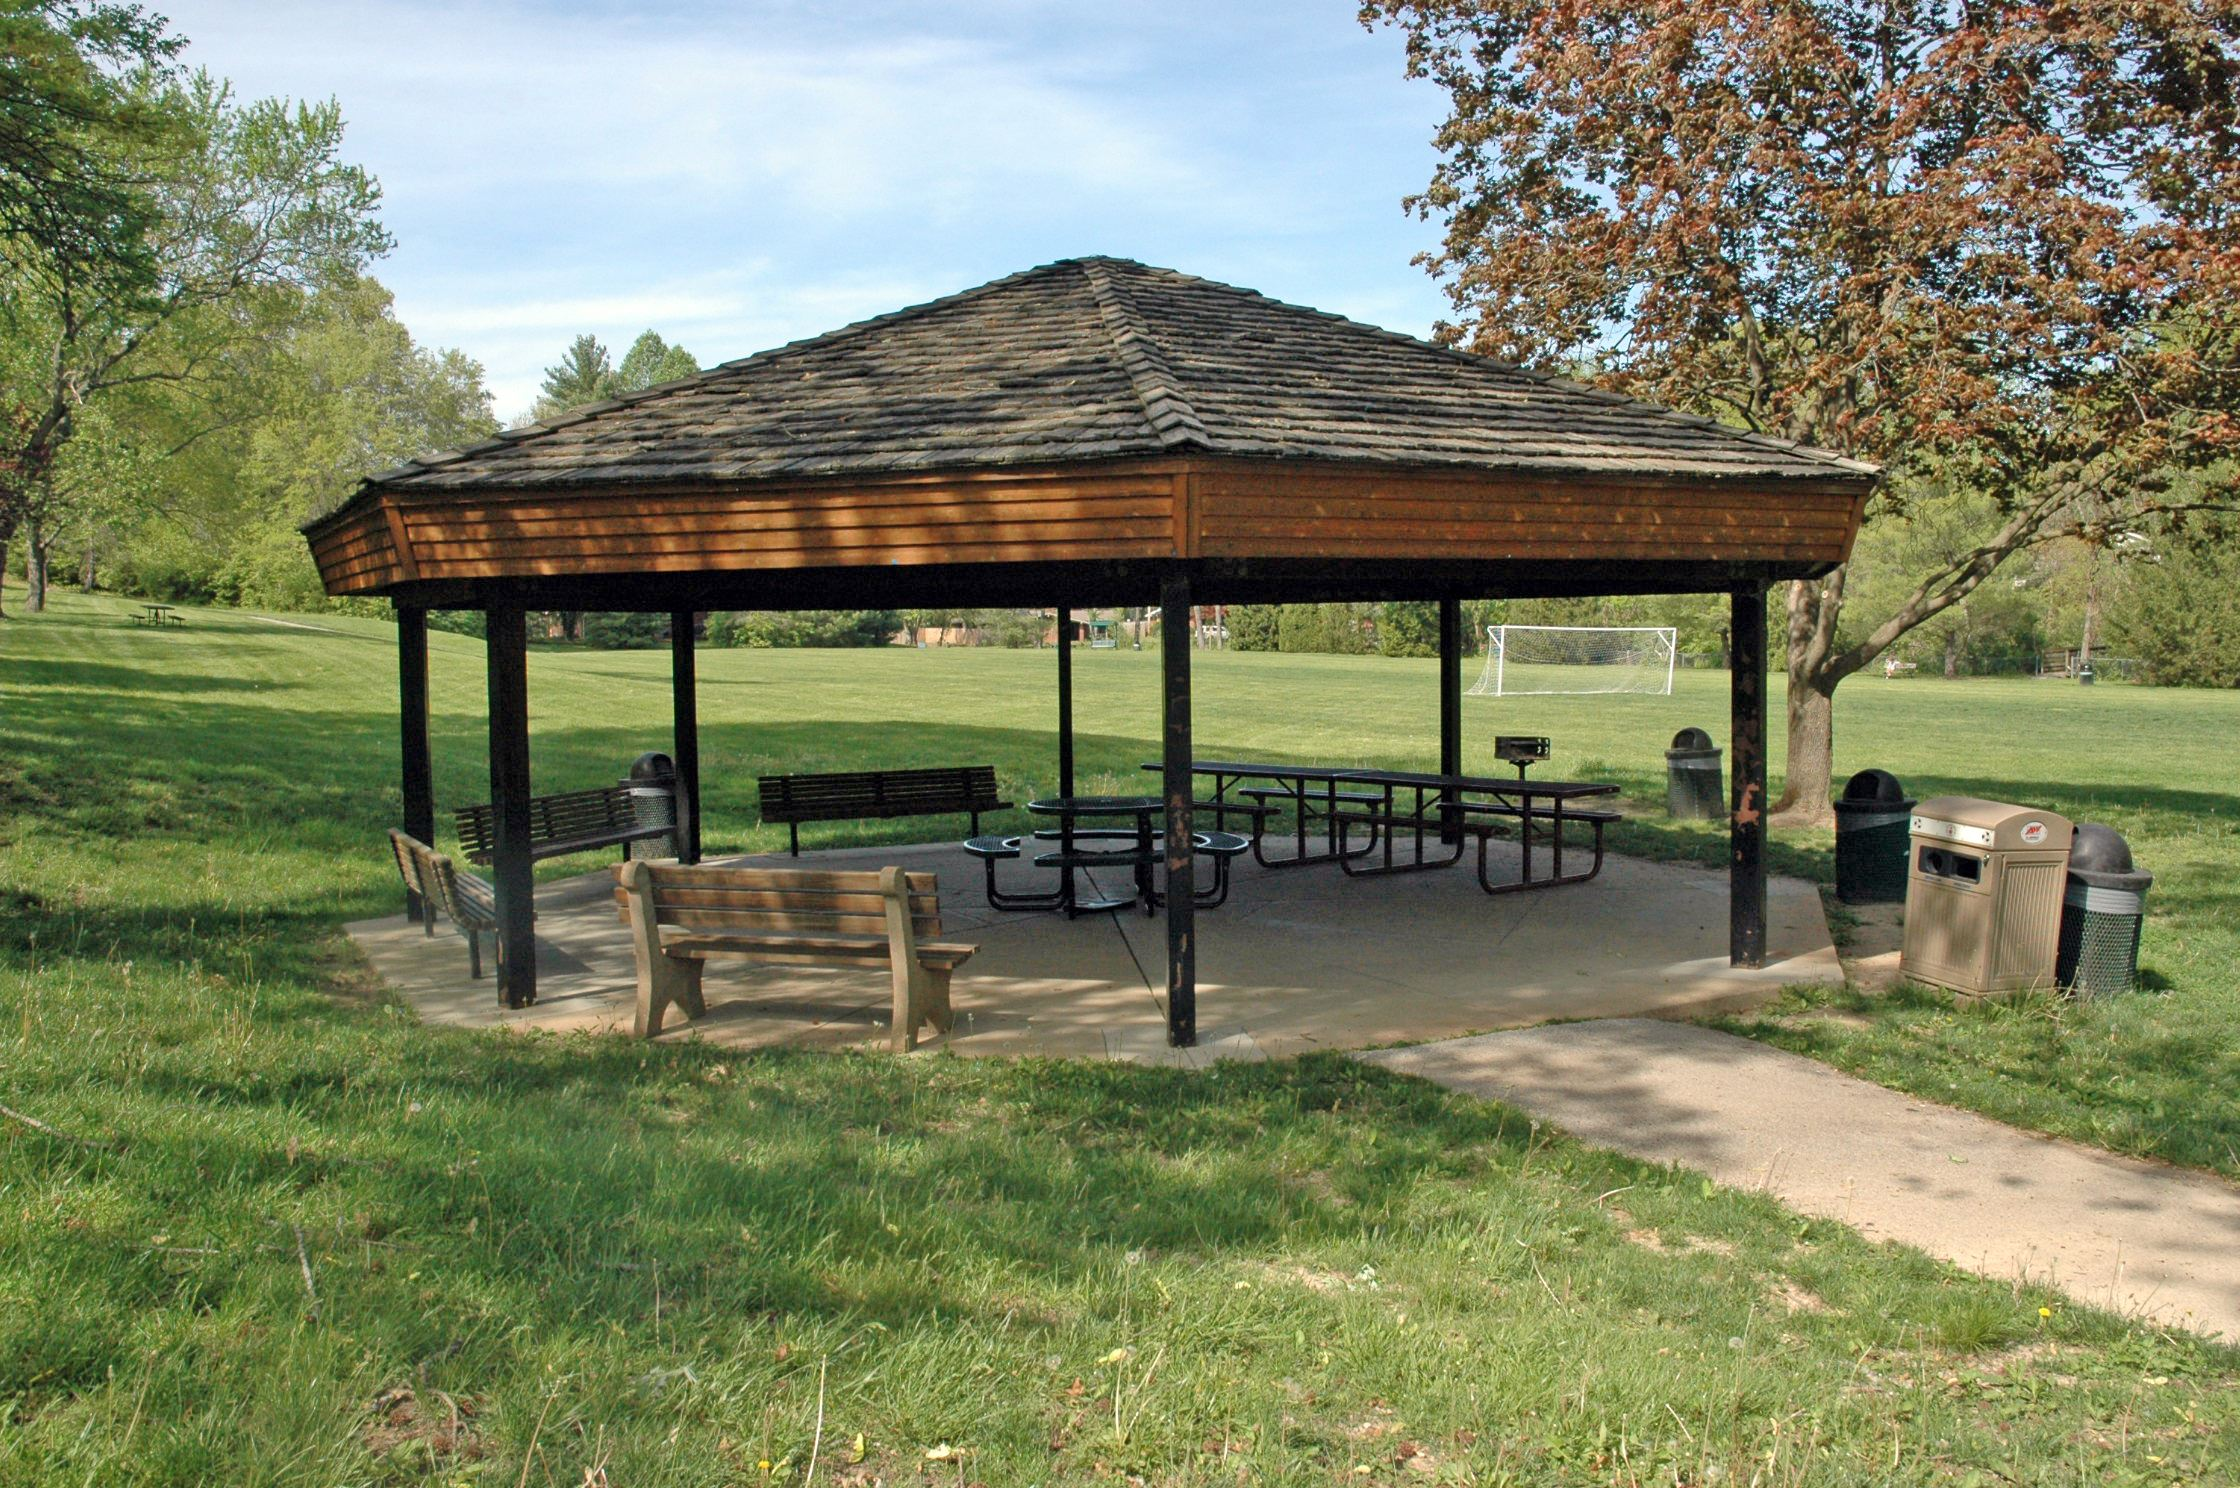 Dr. H. Phillip Venable Memorial Park Pavilion